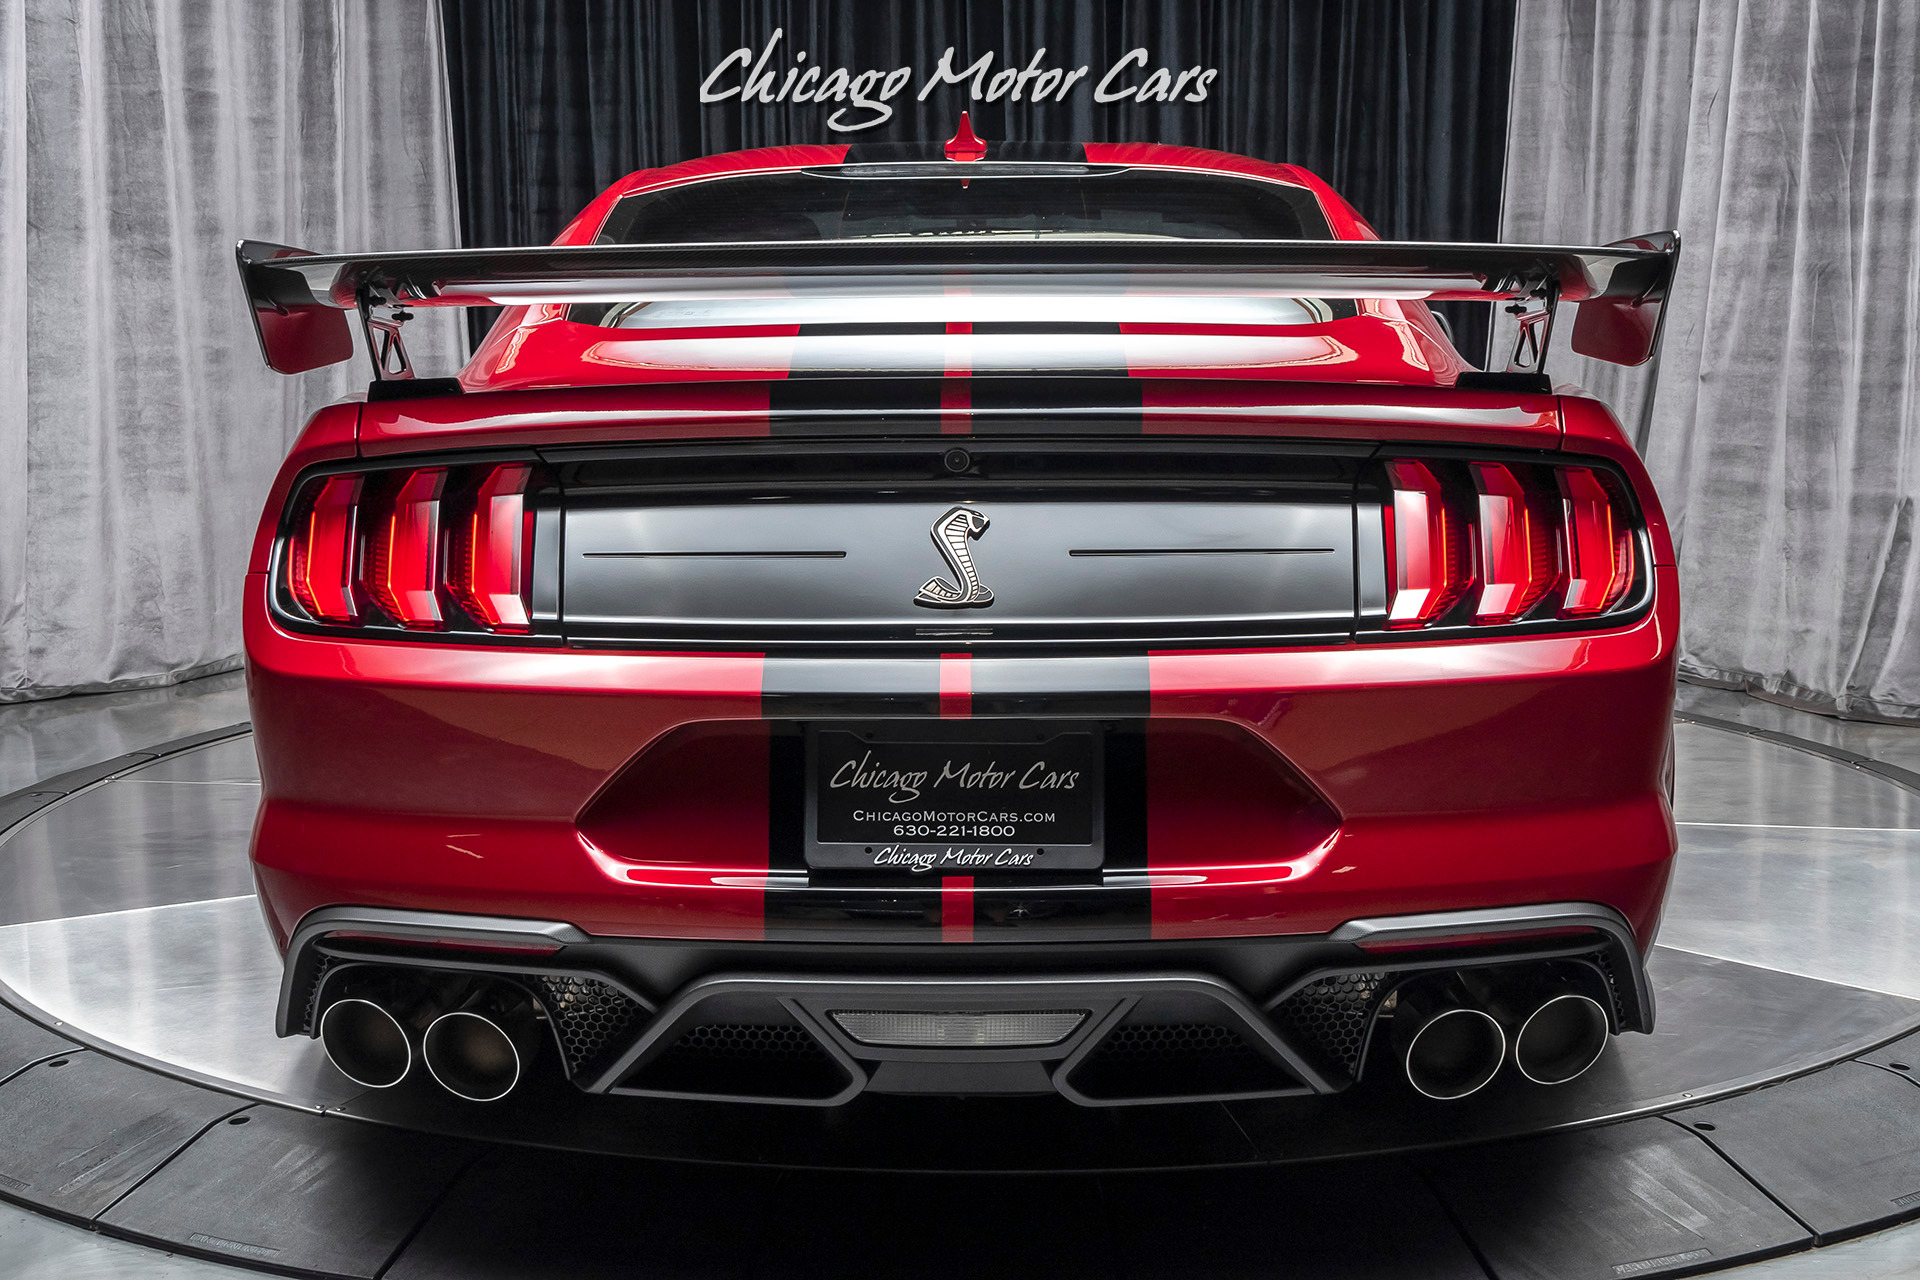 Used-2020-Ford-Mustang-Shelby-GT500-GOLDEN-TICKET---CARBON-FIBER-TRACK-PACK-ONLY-25-MILES